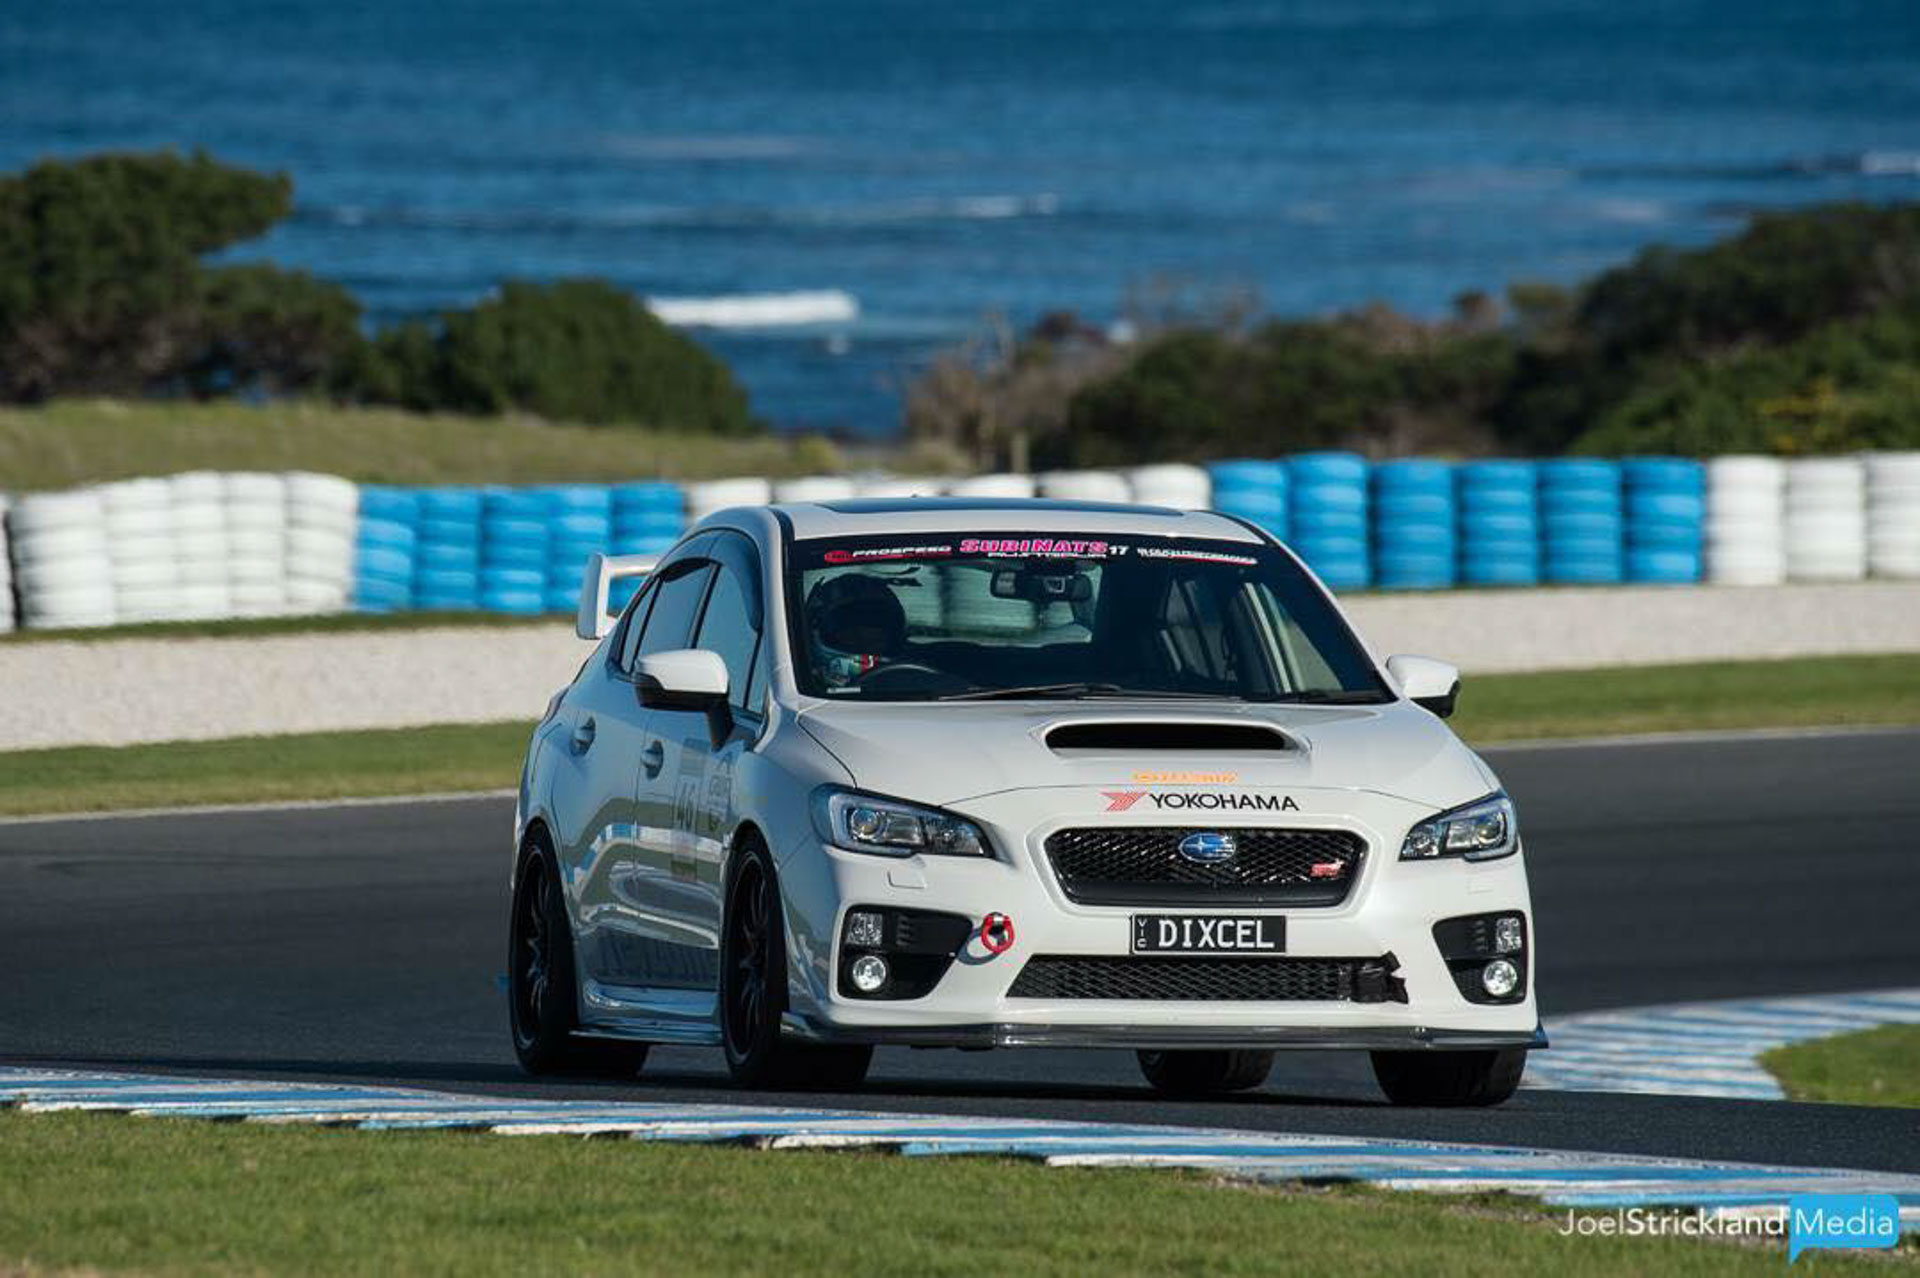 Subaru 5 Subaru Subarus are a very popular brand in today's performance market and with every new model, there are changes both mechanically and electronically that may make it a bit confusing for you – the car enthusiast.